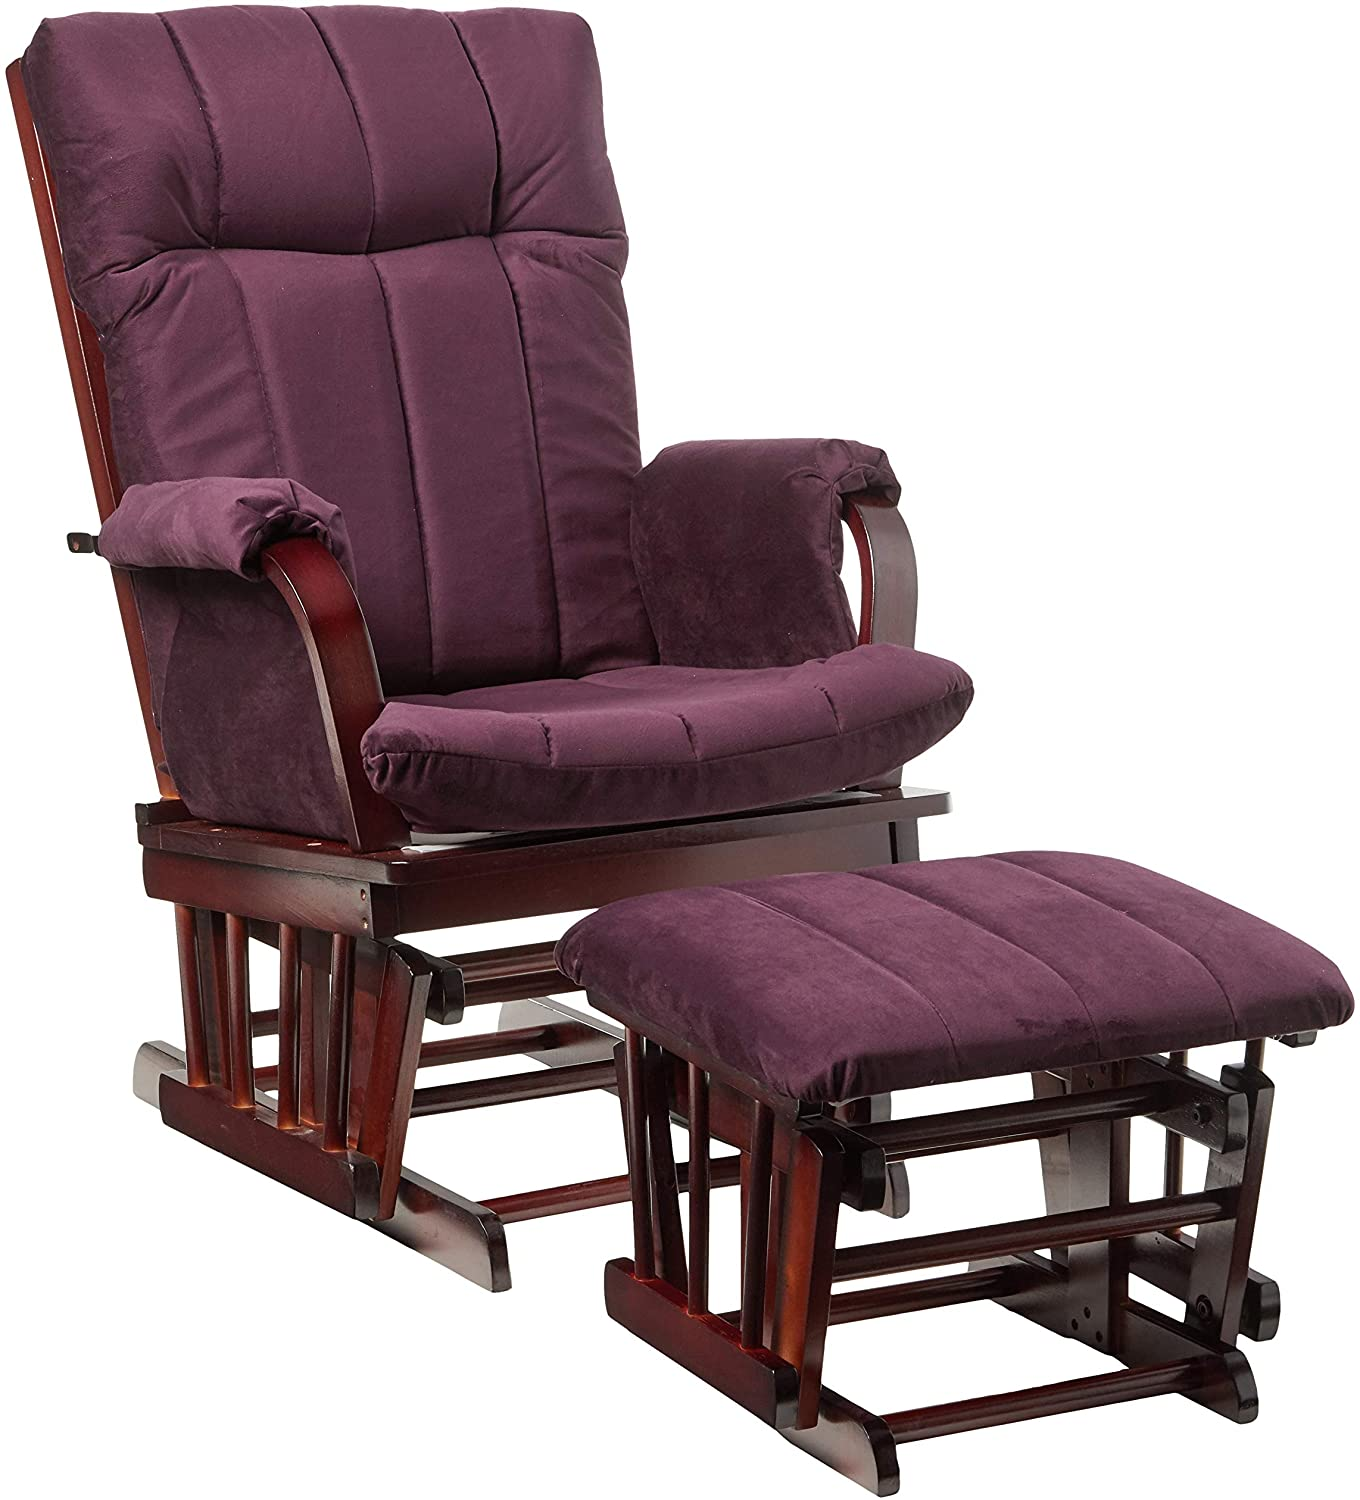 Artiva USA AF20203 – PUR Home Deluxe Microfiber Cherry Wood Glider